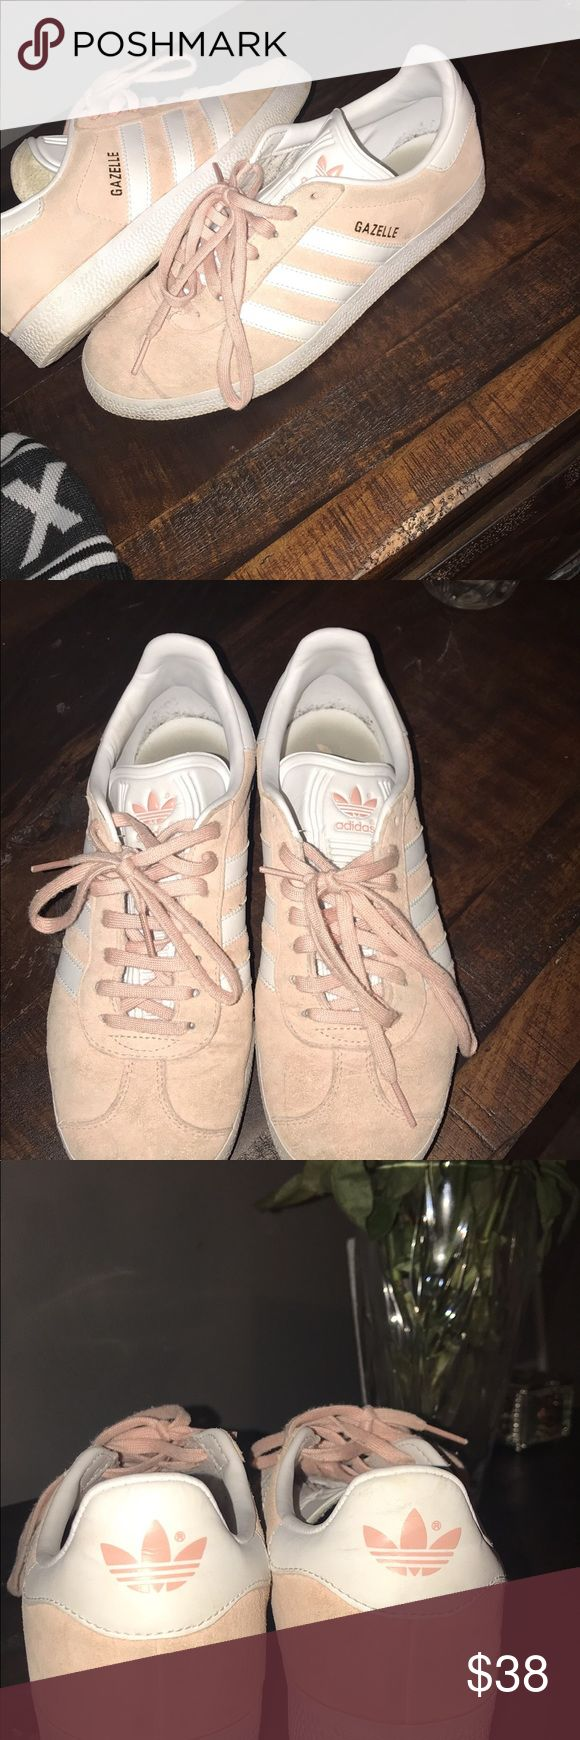 Adidas pink gazelles good condition. Only worn a handful of times. Size 8 womens adidas Shoes Athletic Shoes